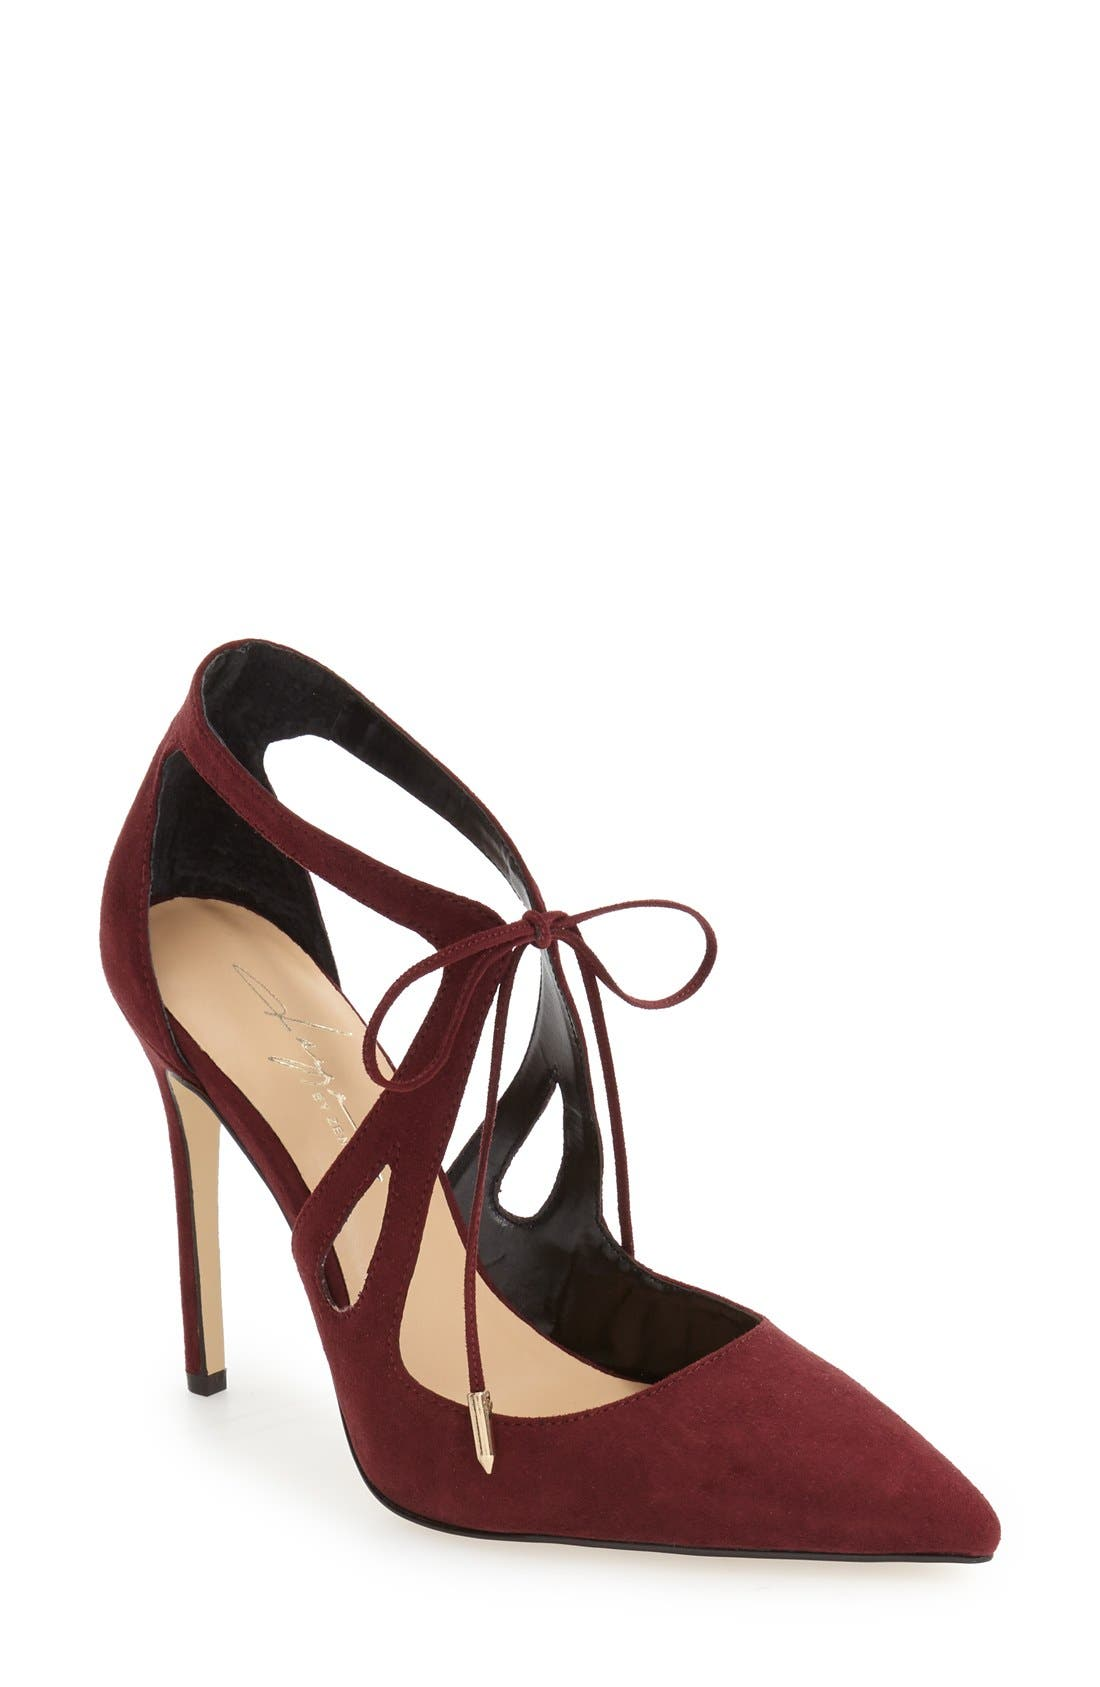 by Zendaya 'Aaron' Pointy Toe Pump